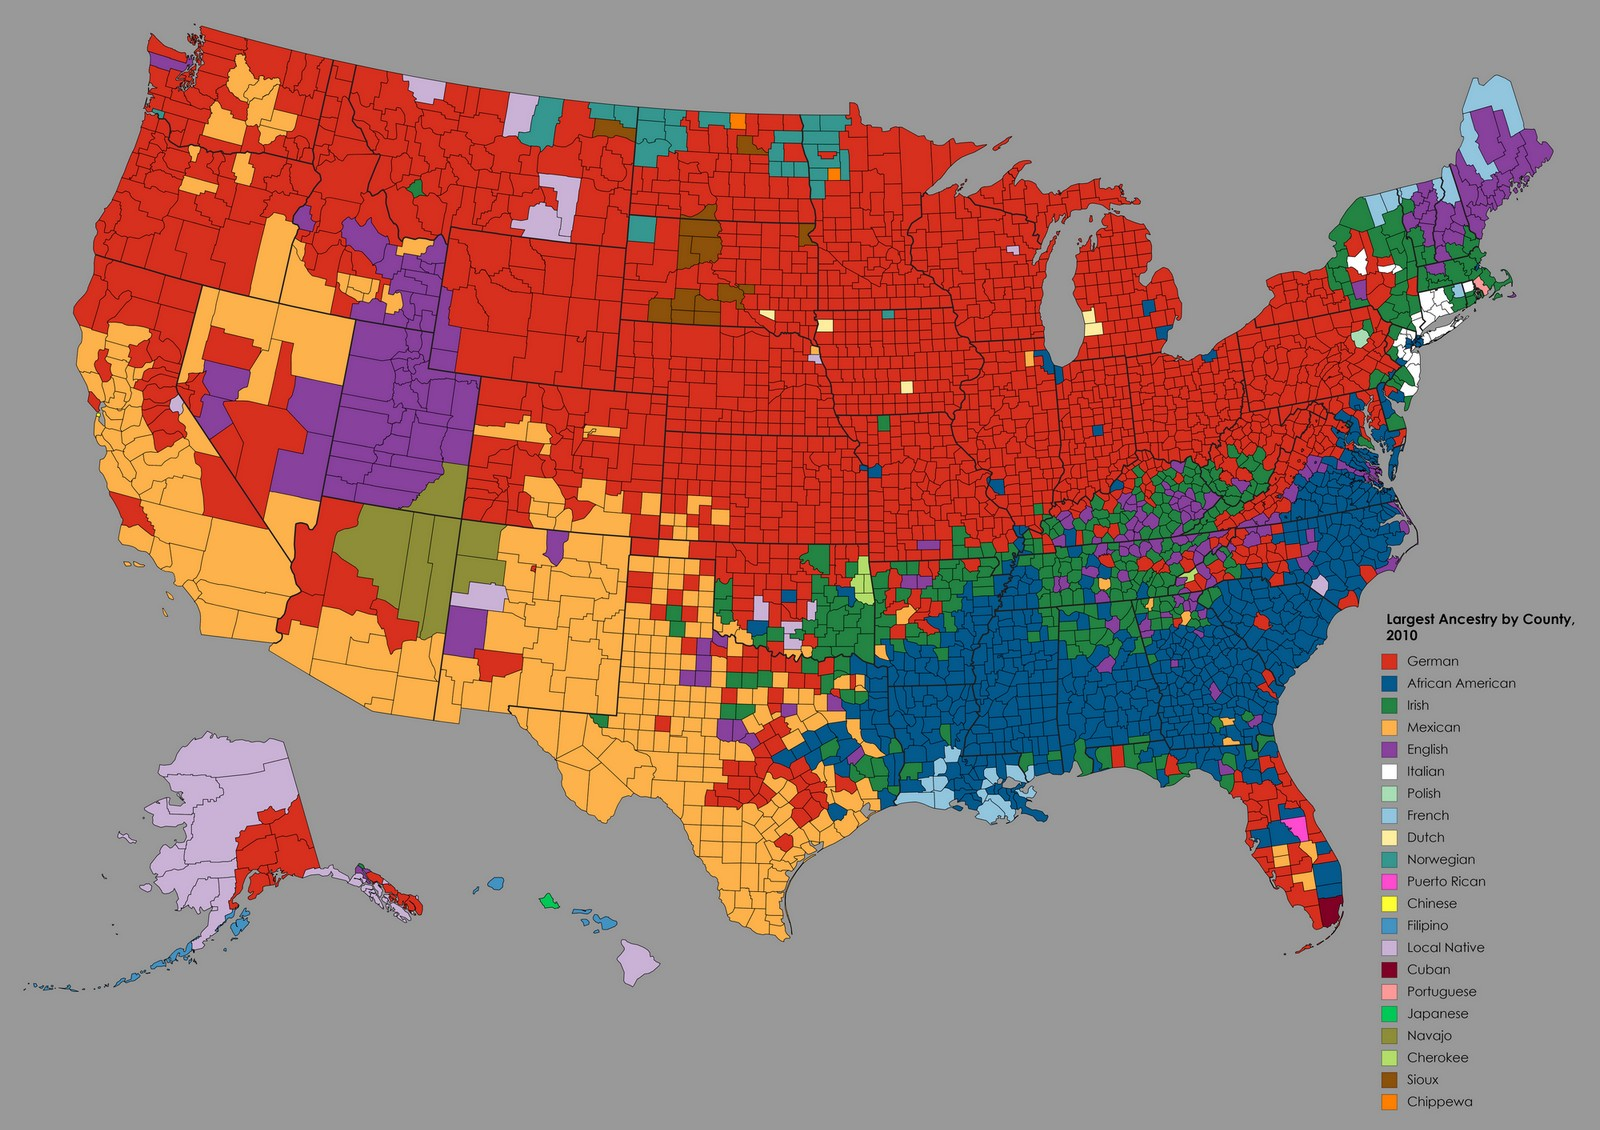 Ethnic Map Of The Us Largest Ancestry by U.S. County   Vivid Maps